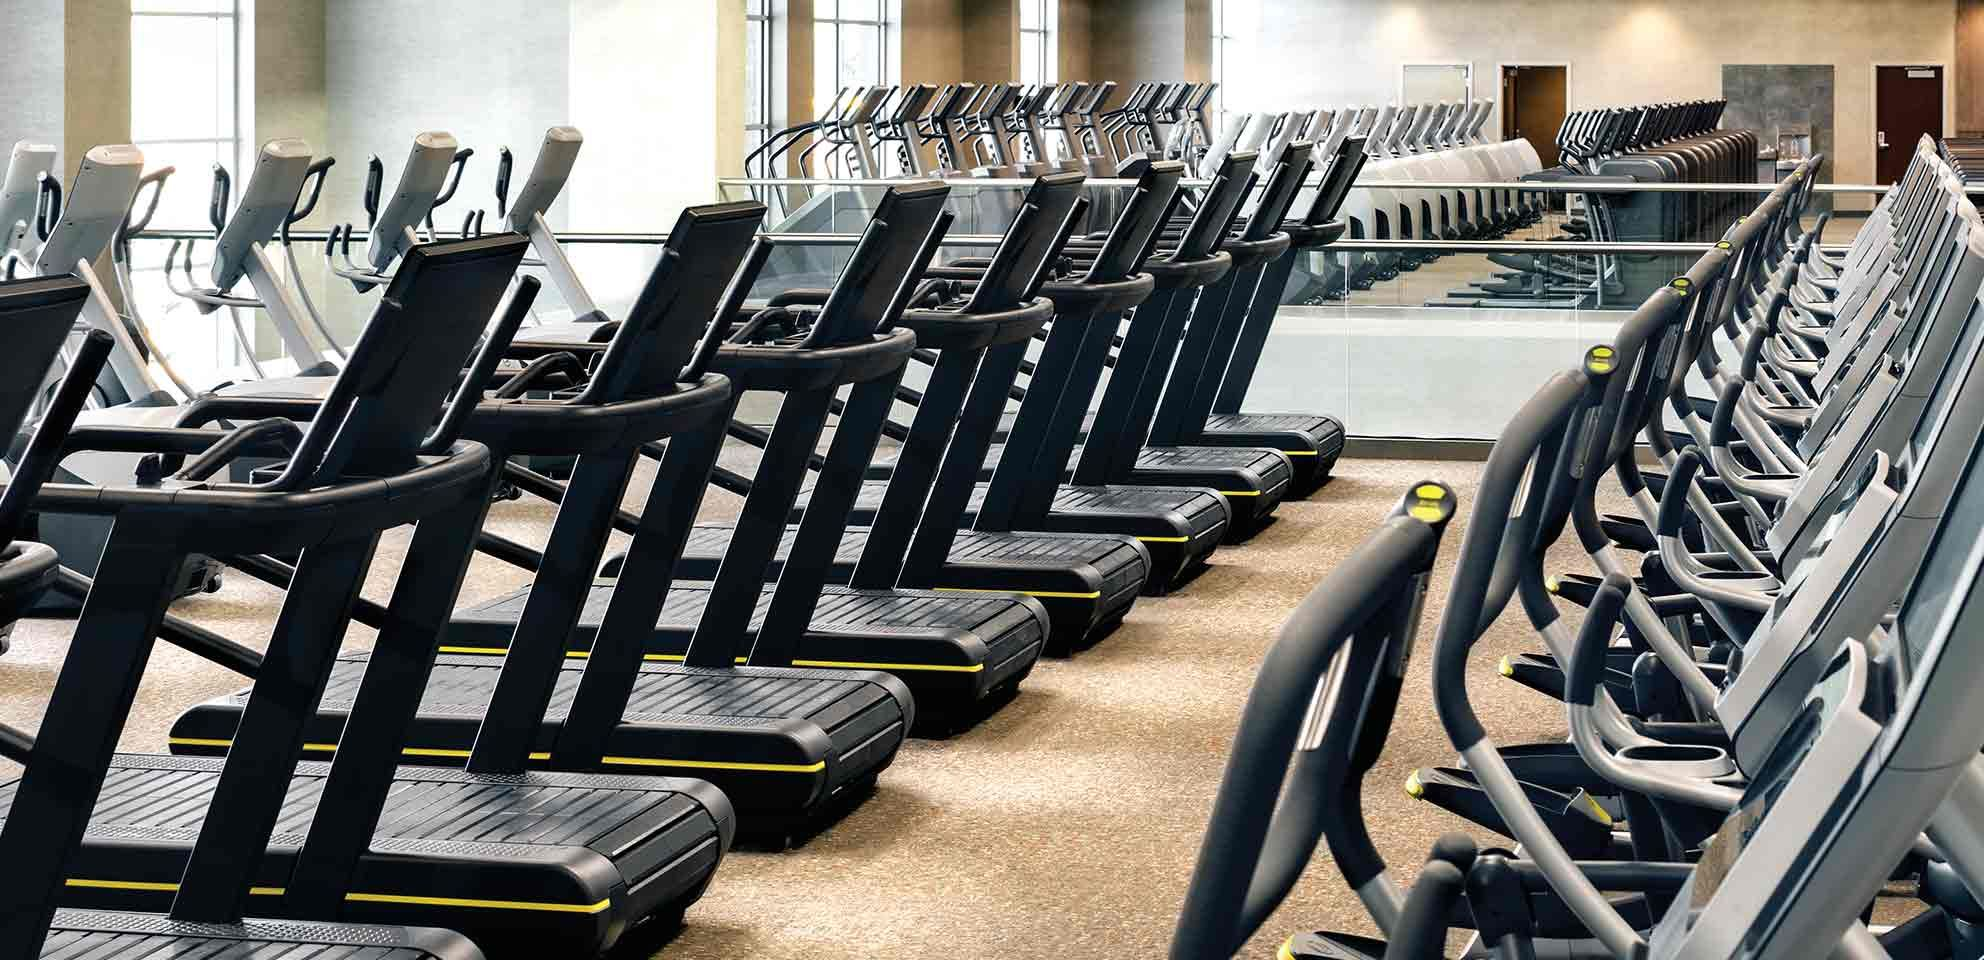 Premier Athletic Club Pool And Spa Life Time Romeoville Lifetime Fitness Luxury Gym Spa Pool